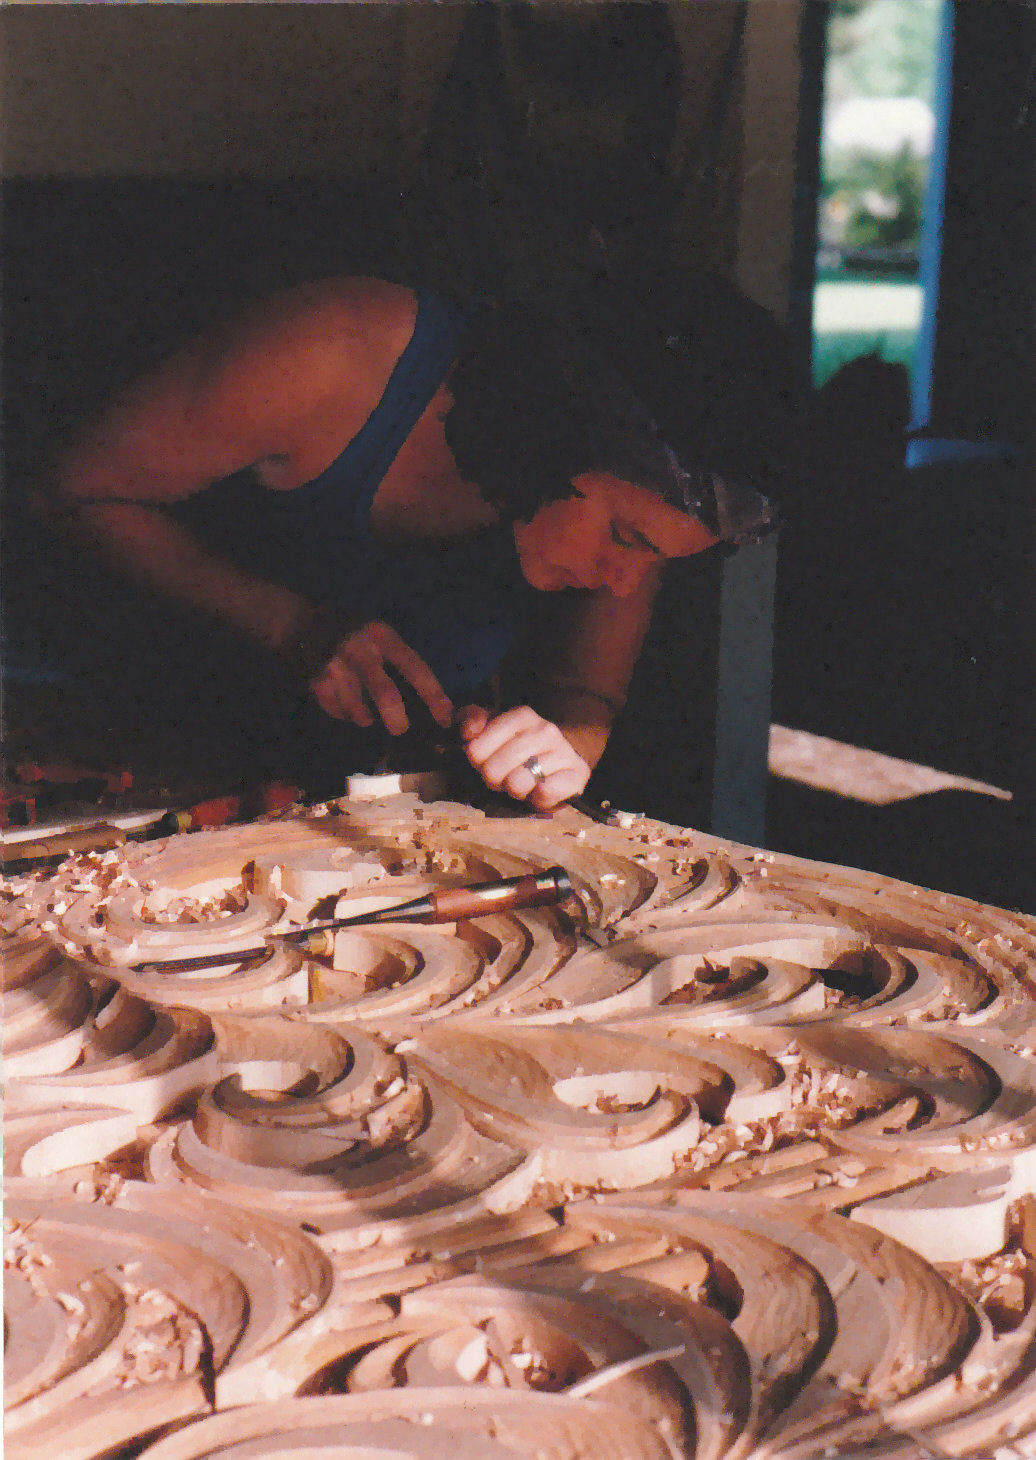 Jude fritts wood carving sculpture workshop photos